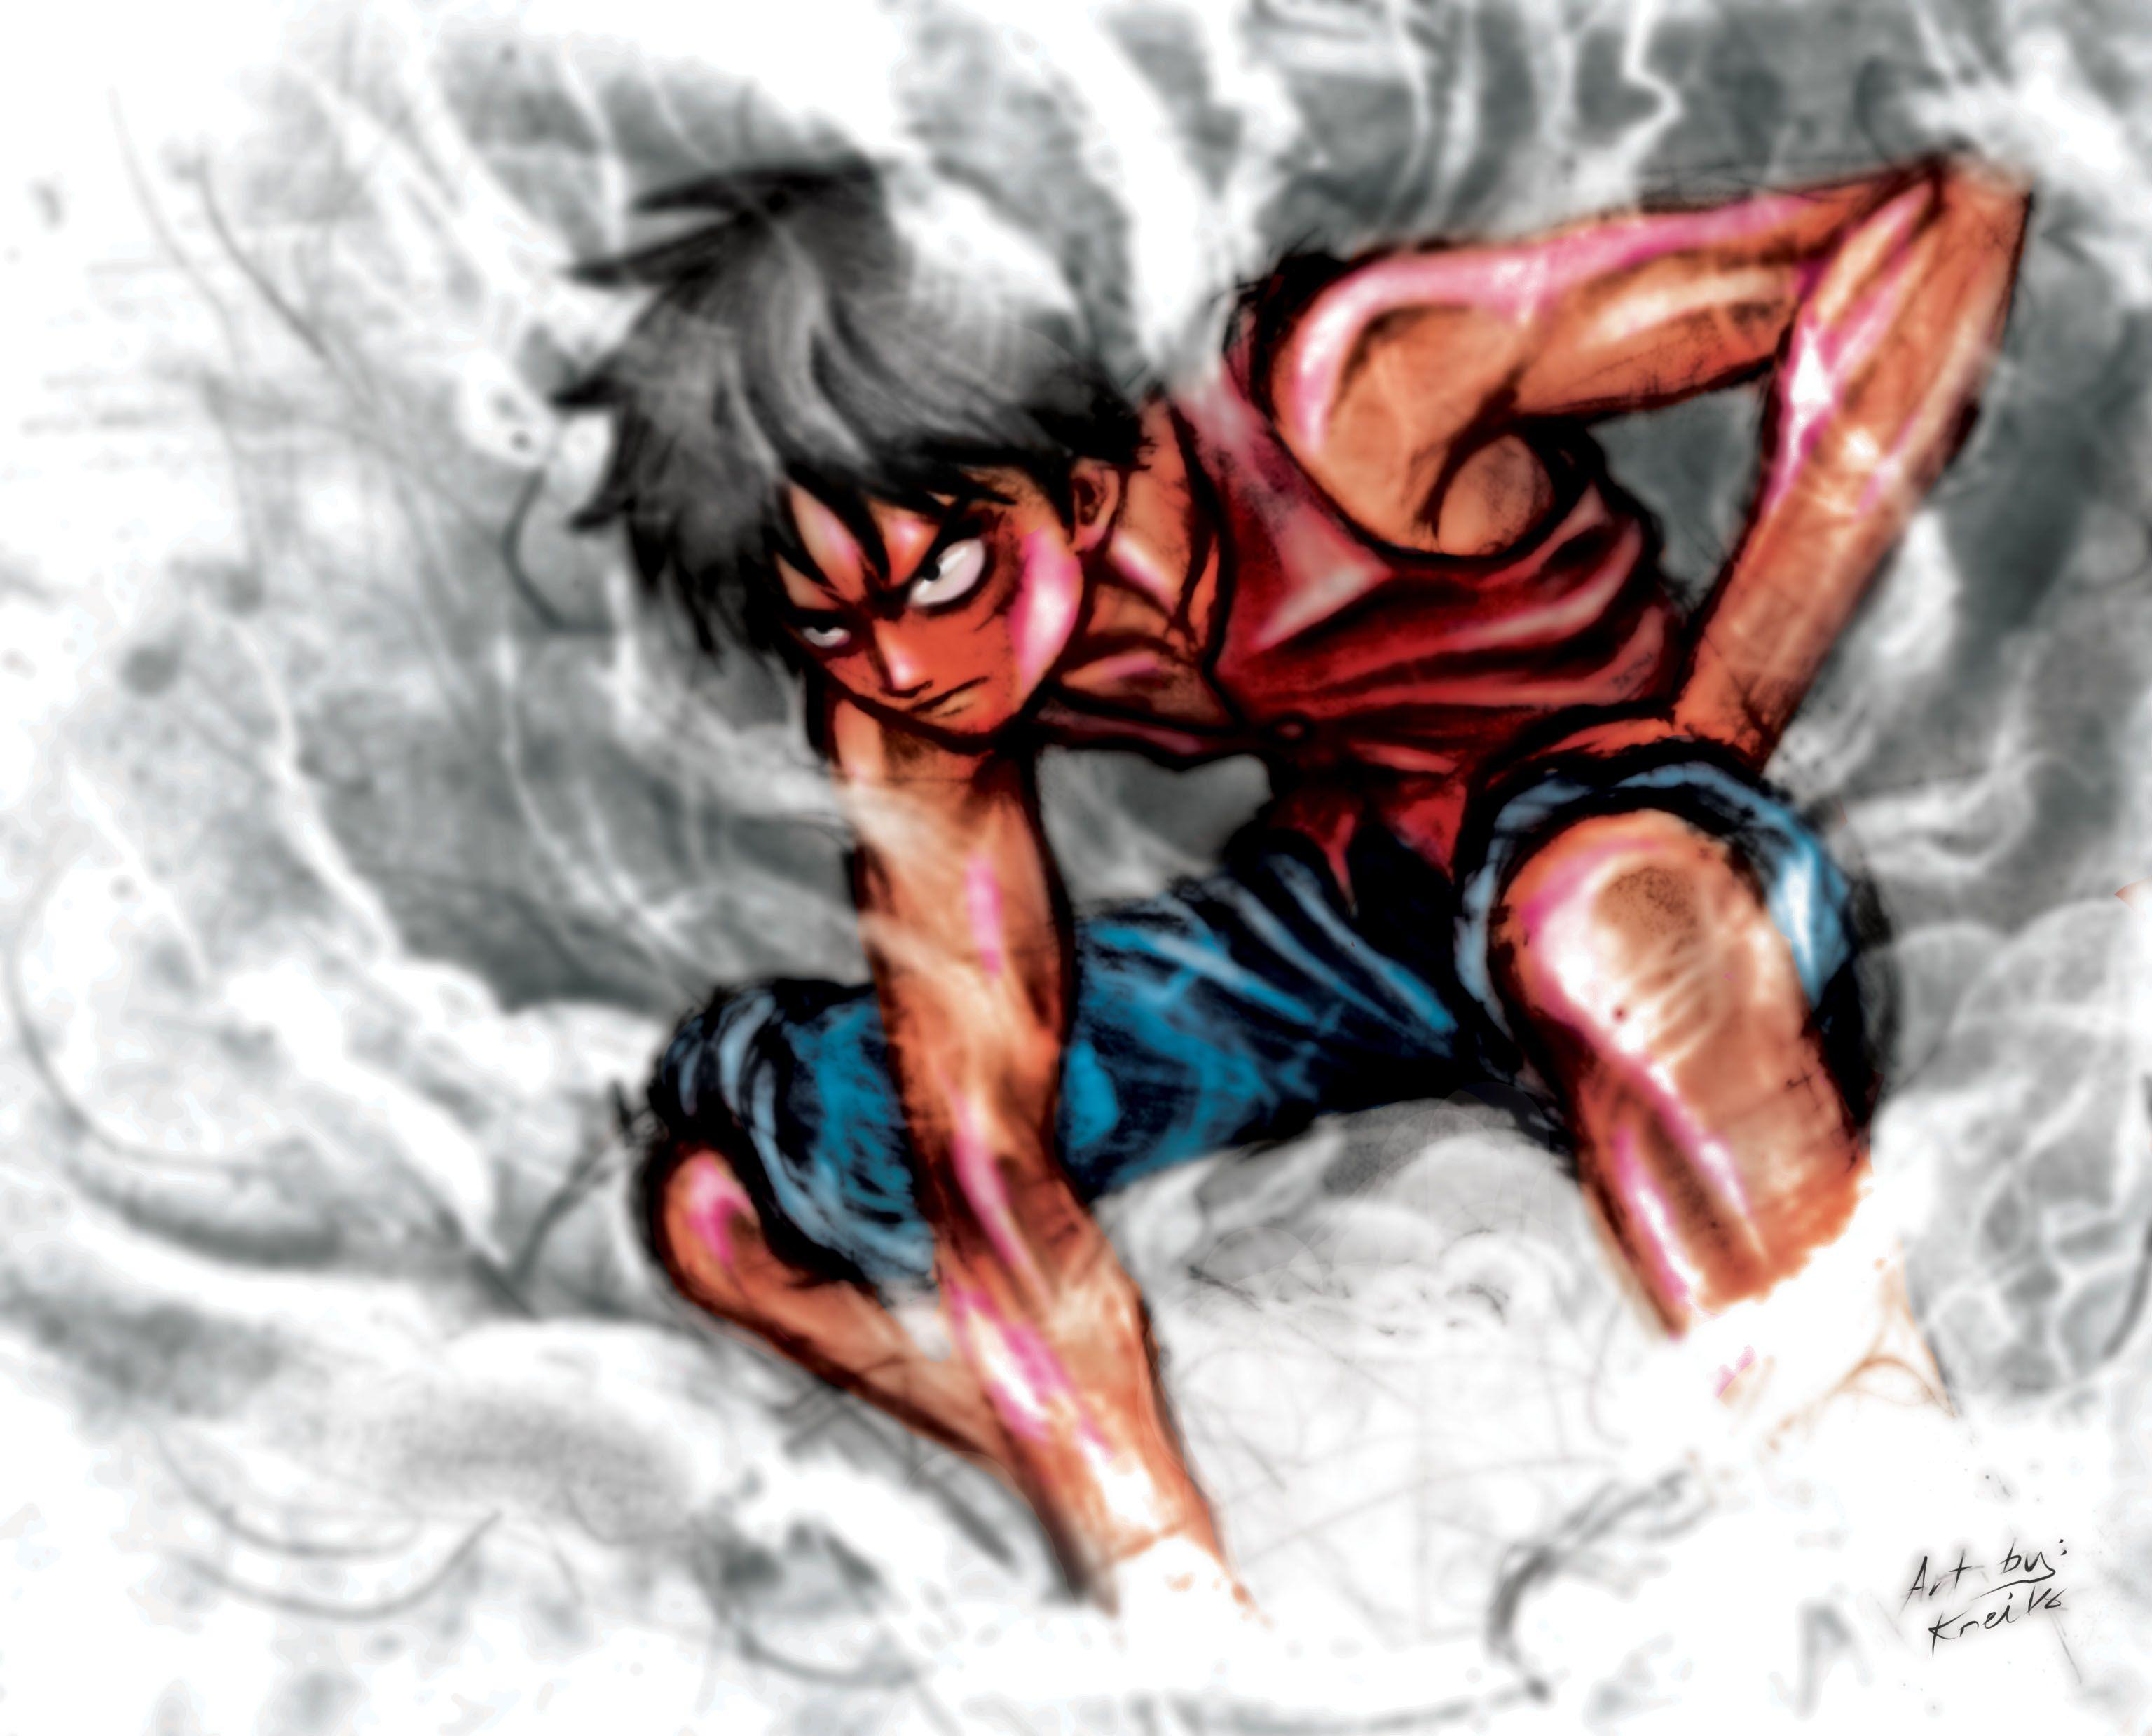 Hq res inn arts wallpapers one piece luffy. Luffy Gear 4 Wallpapers - Wallpaper Cave